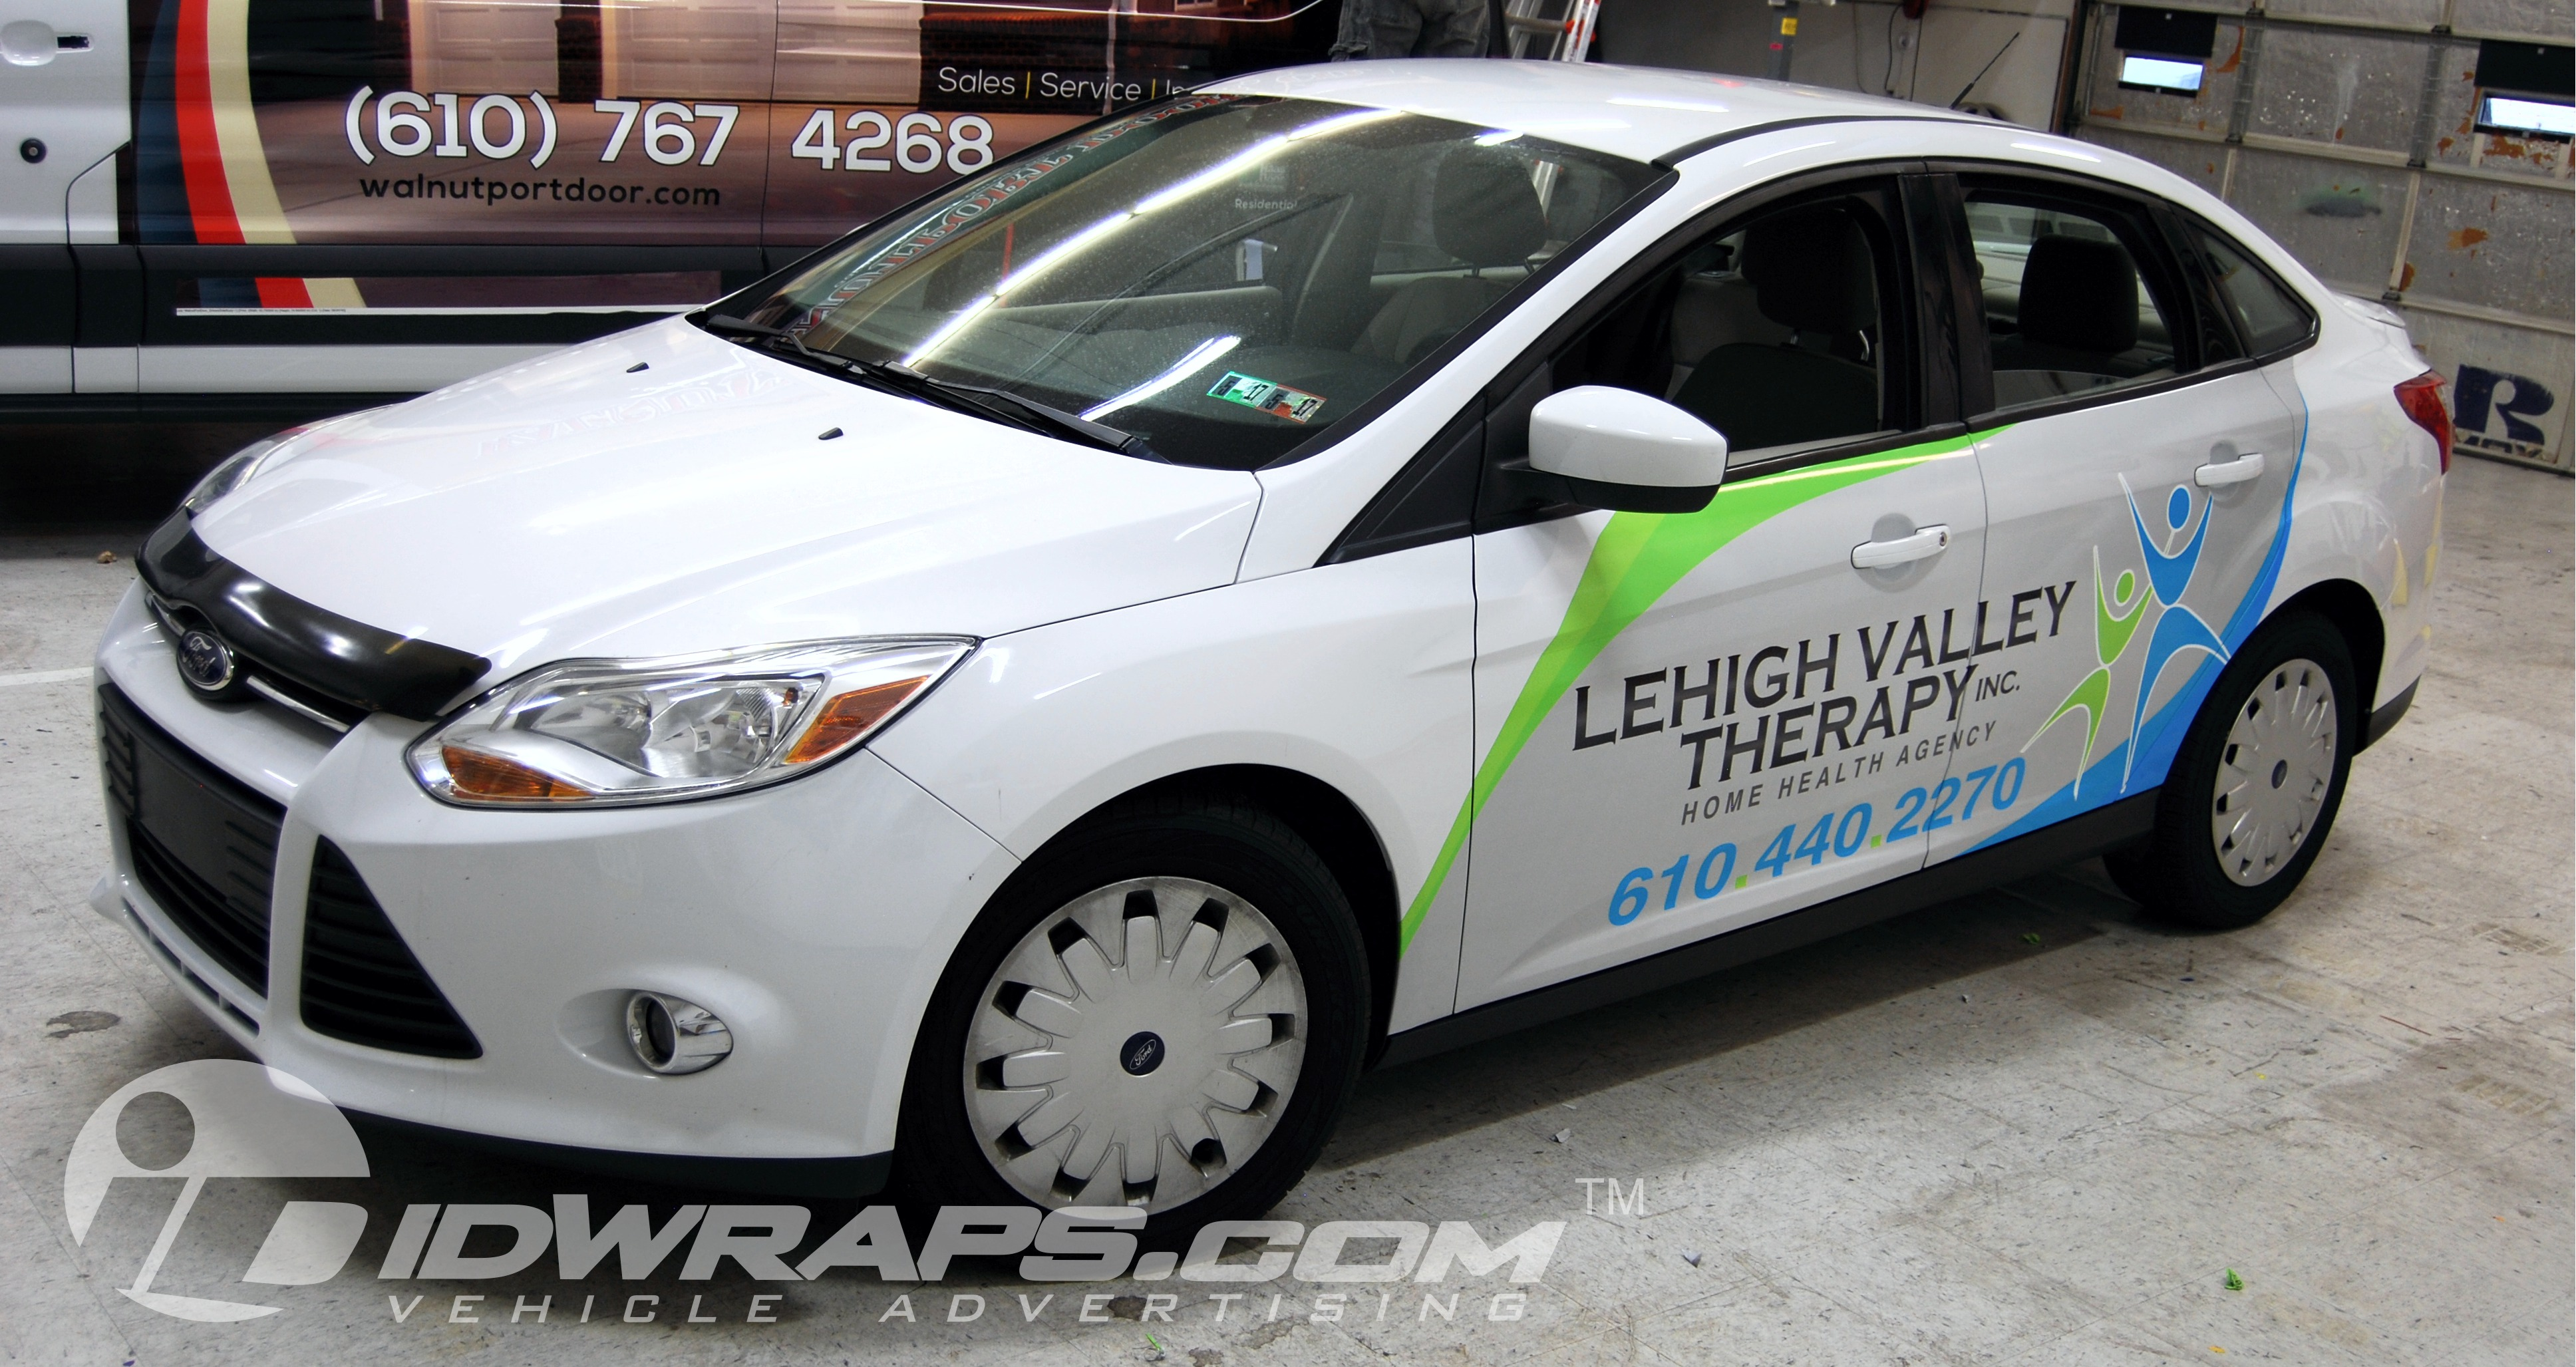 home-care-wrap-lehigh-valley-therapy-ford-focus-partial-3m-vinyl-graphic